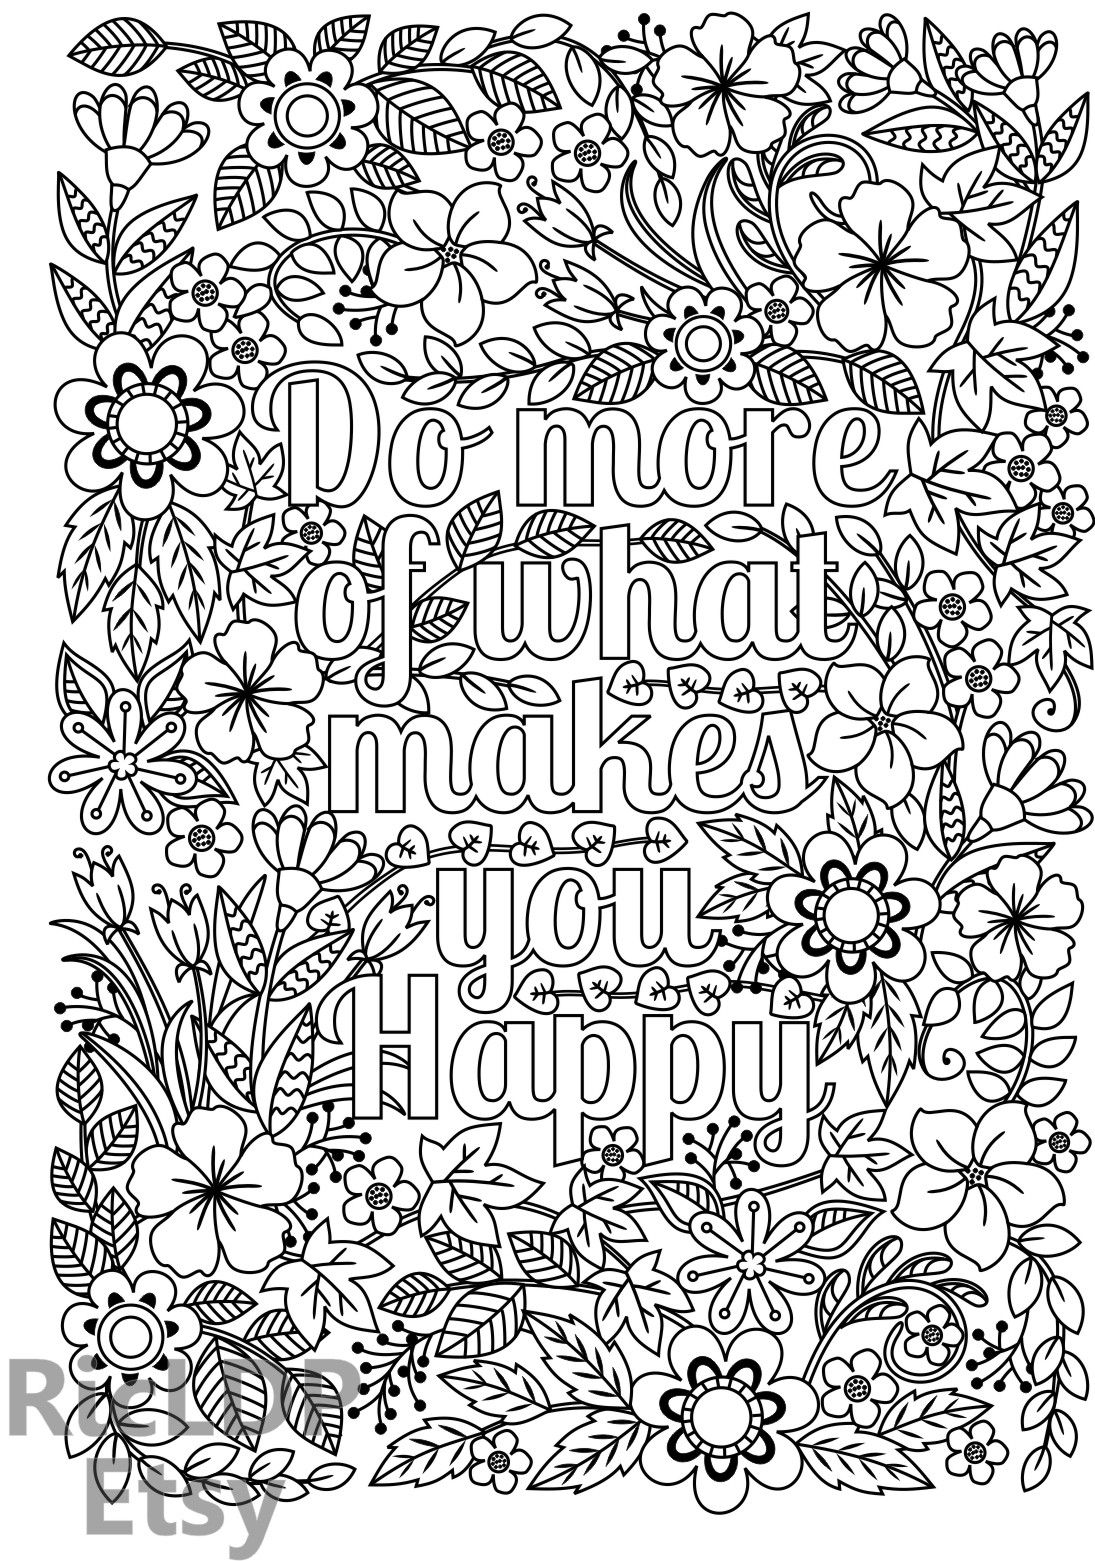 Do more of what makes you happy printable coloring page downloadable coloring for adults colouring for grownups